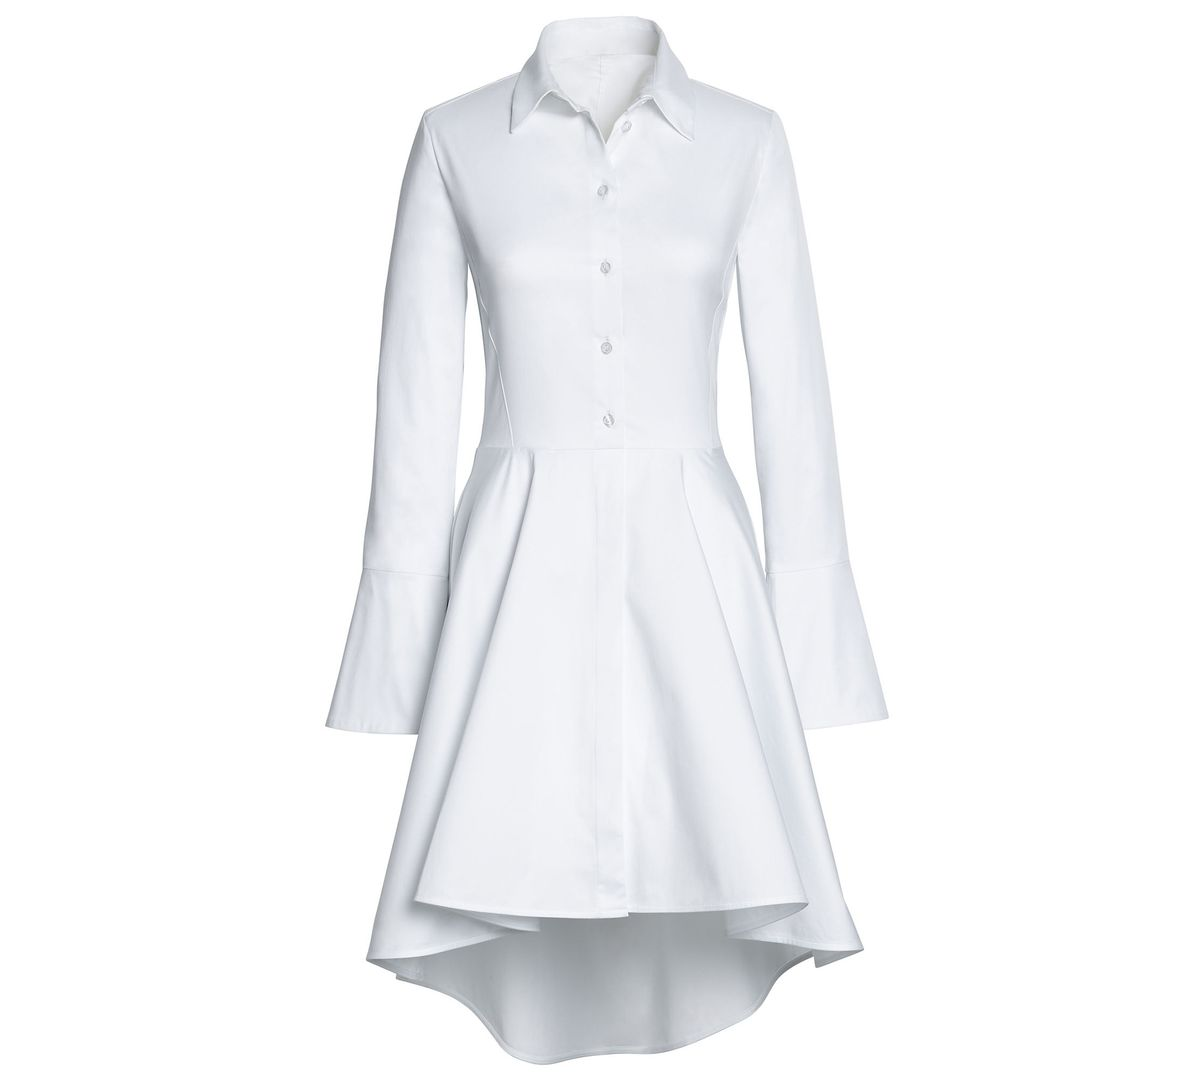 Lana Del Rey S Lust For Life Shirtdress Is The Perfect Shirtdress Racked